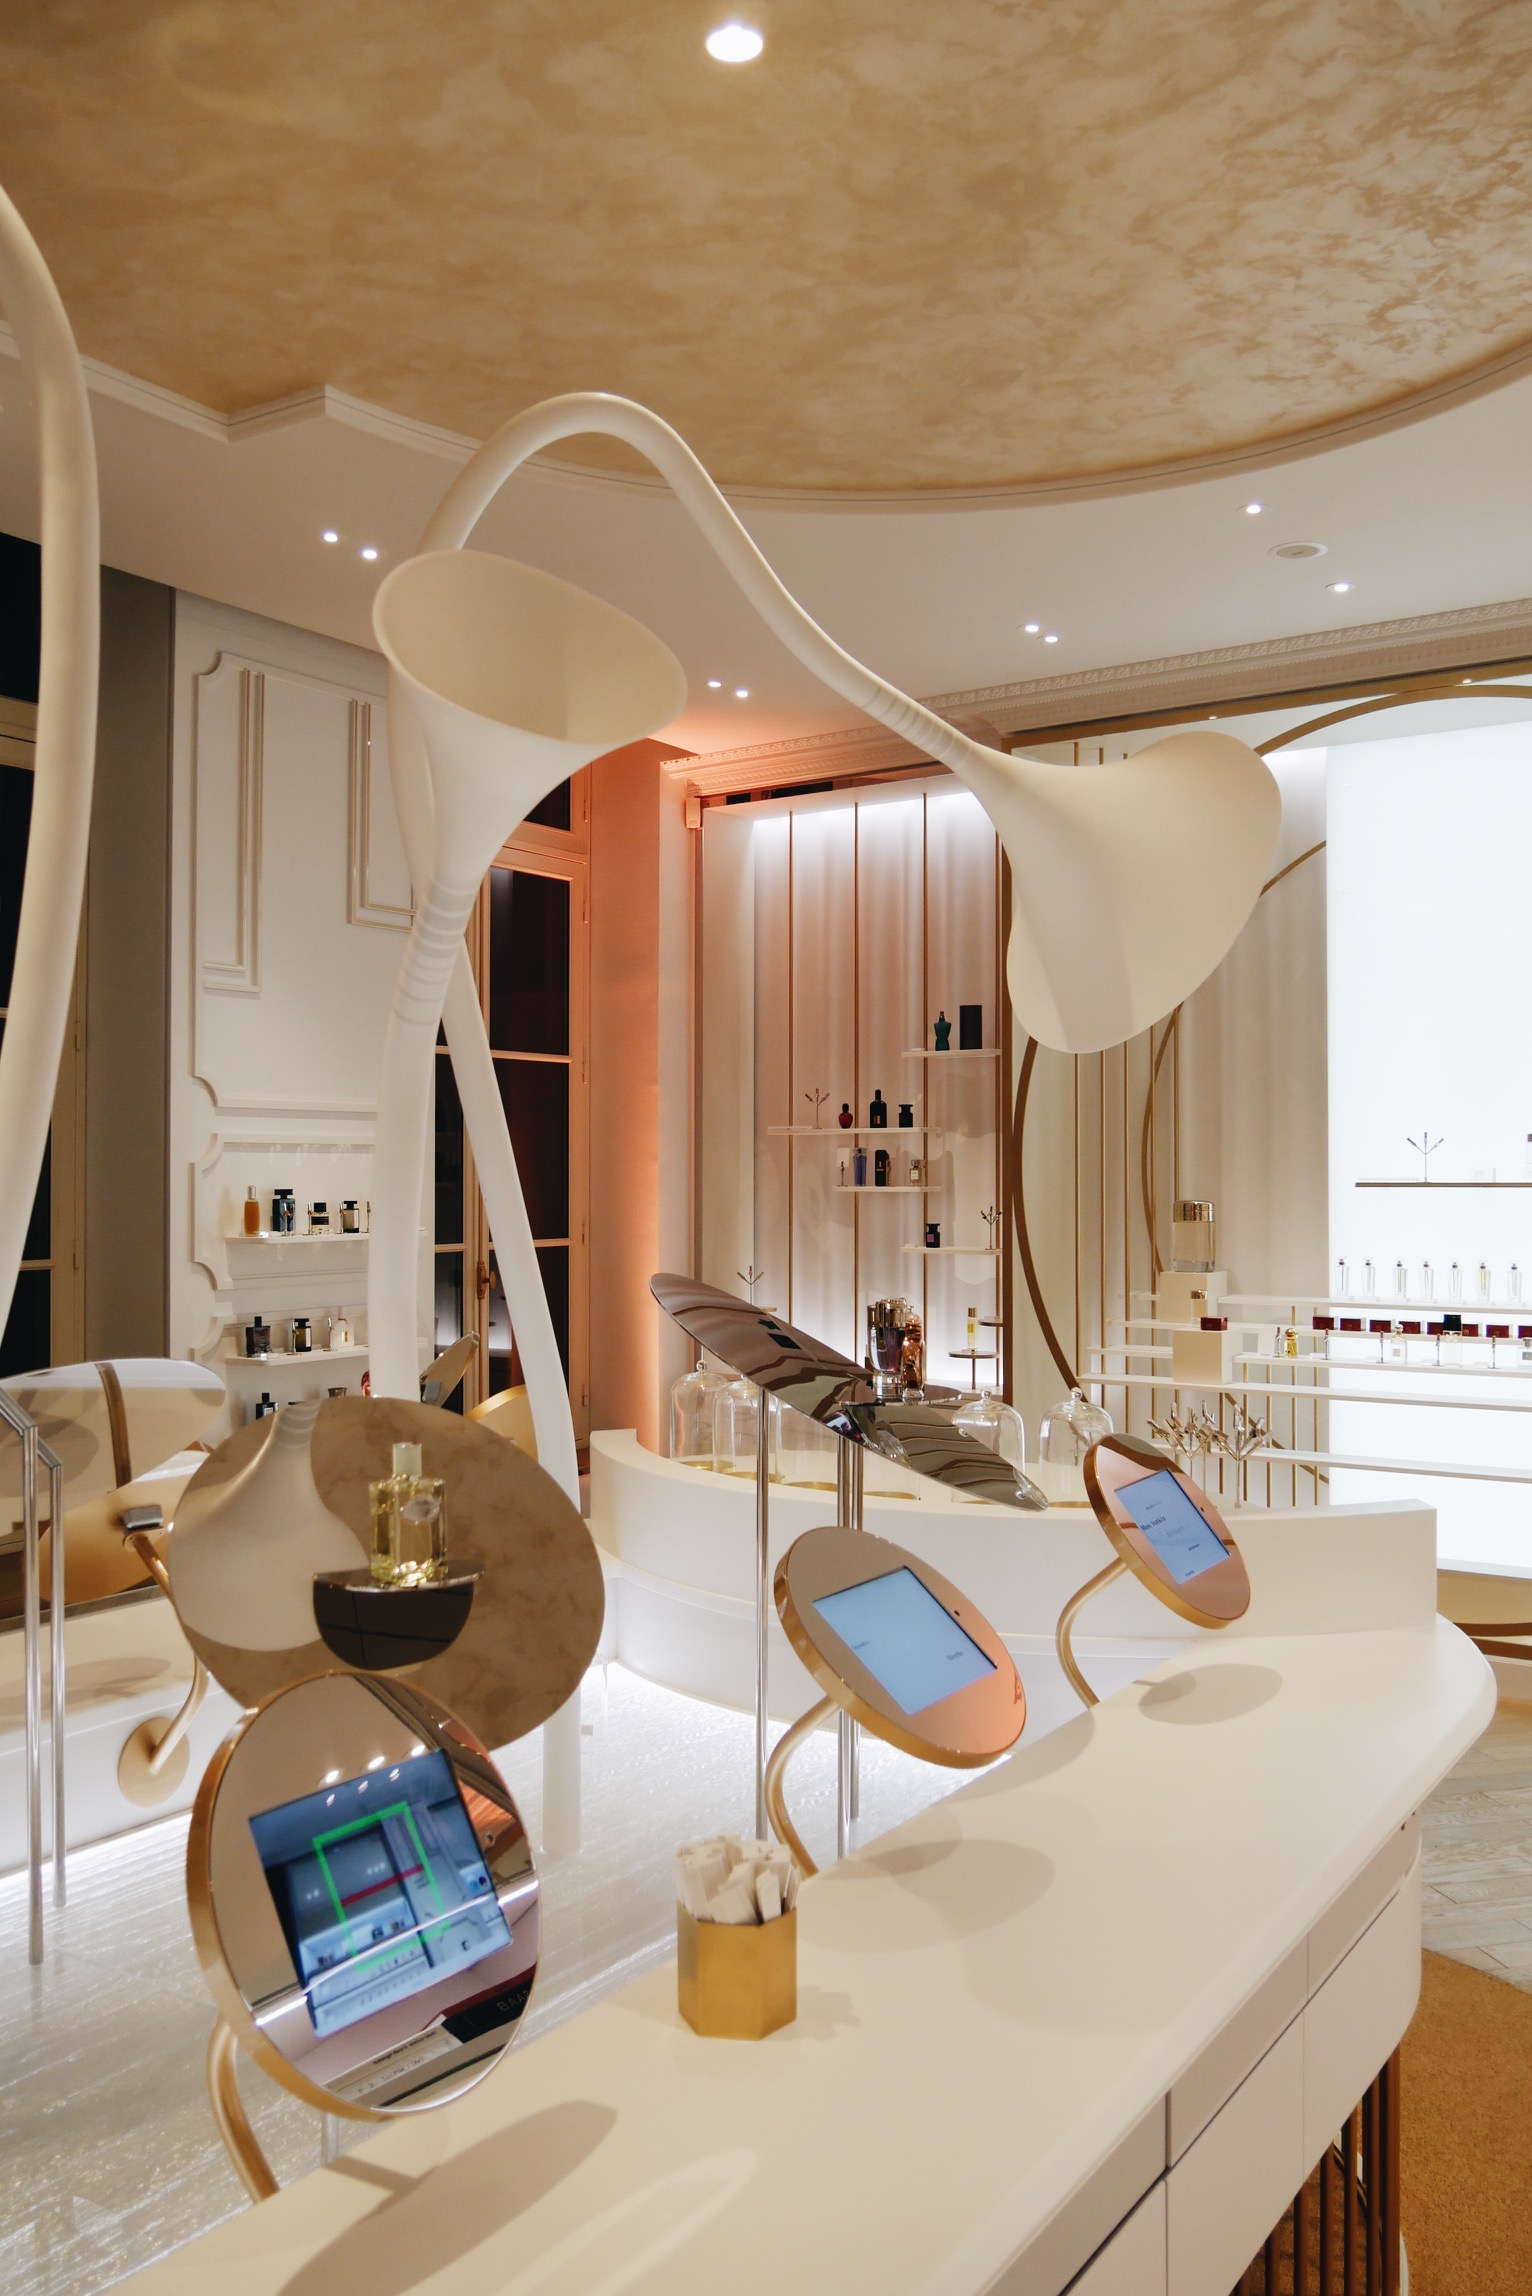 Concept store du Grand Musée du Parfum paris boutique design Agence Projectiles photo usofparis blog